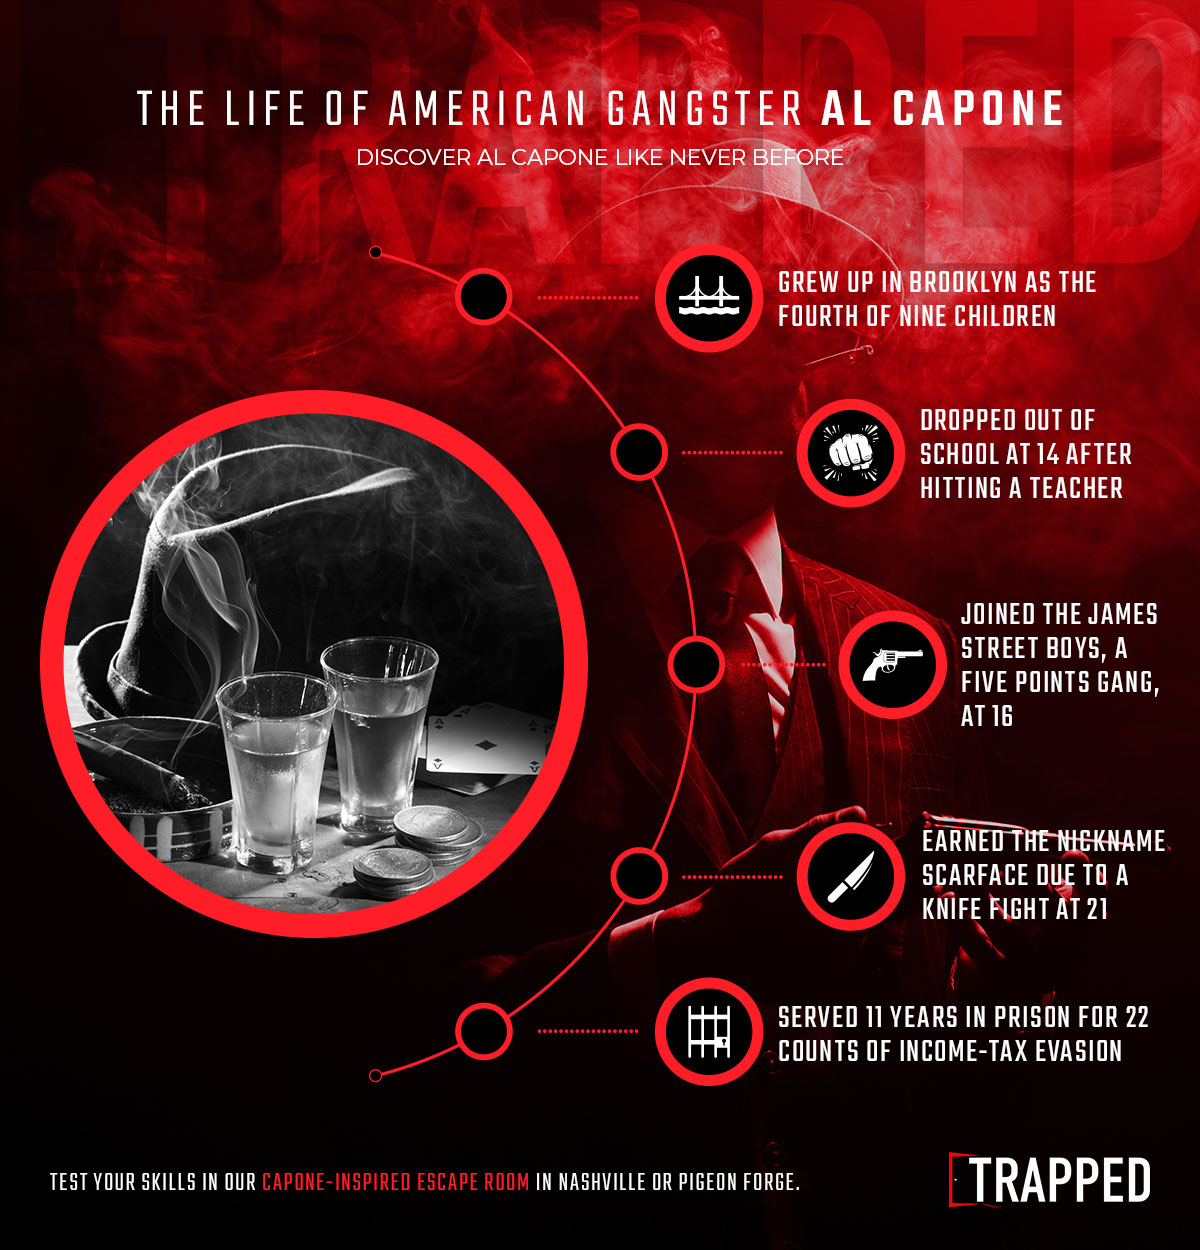 The-Life-of-American-Gangster-Al-Capone-Infographic.jpg